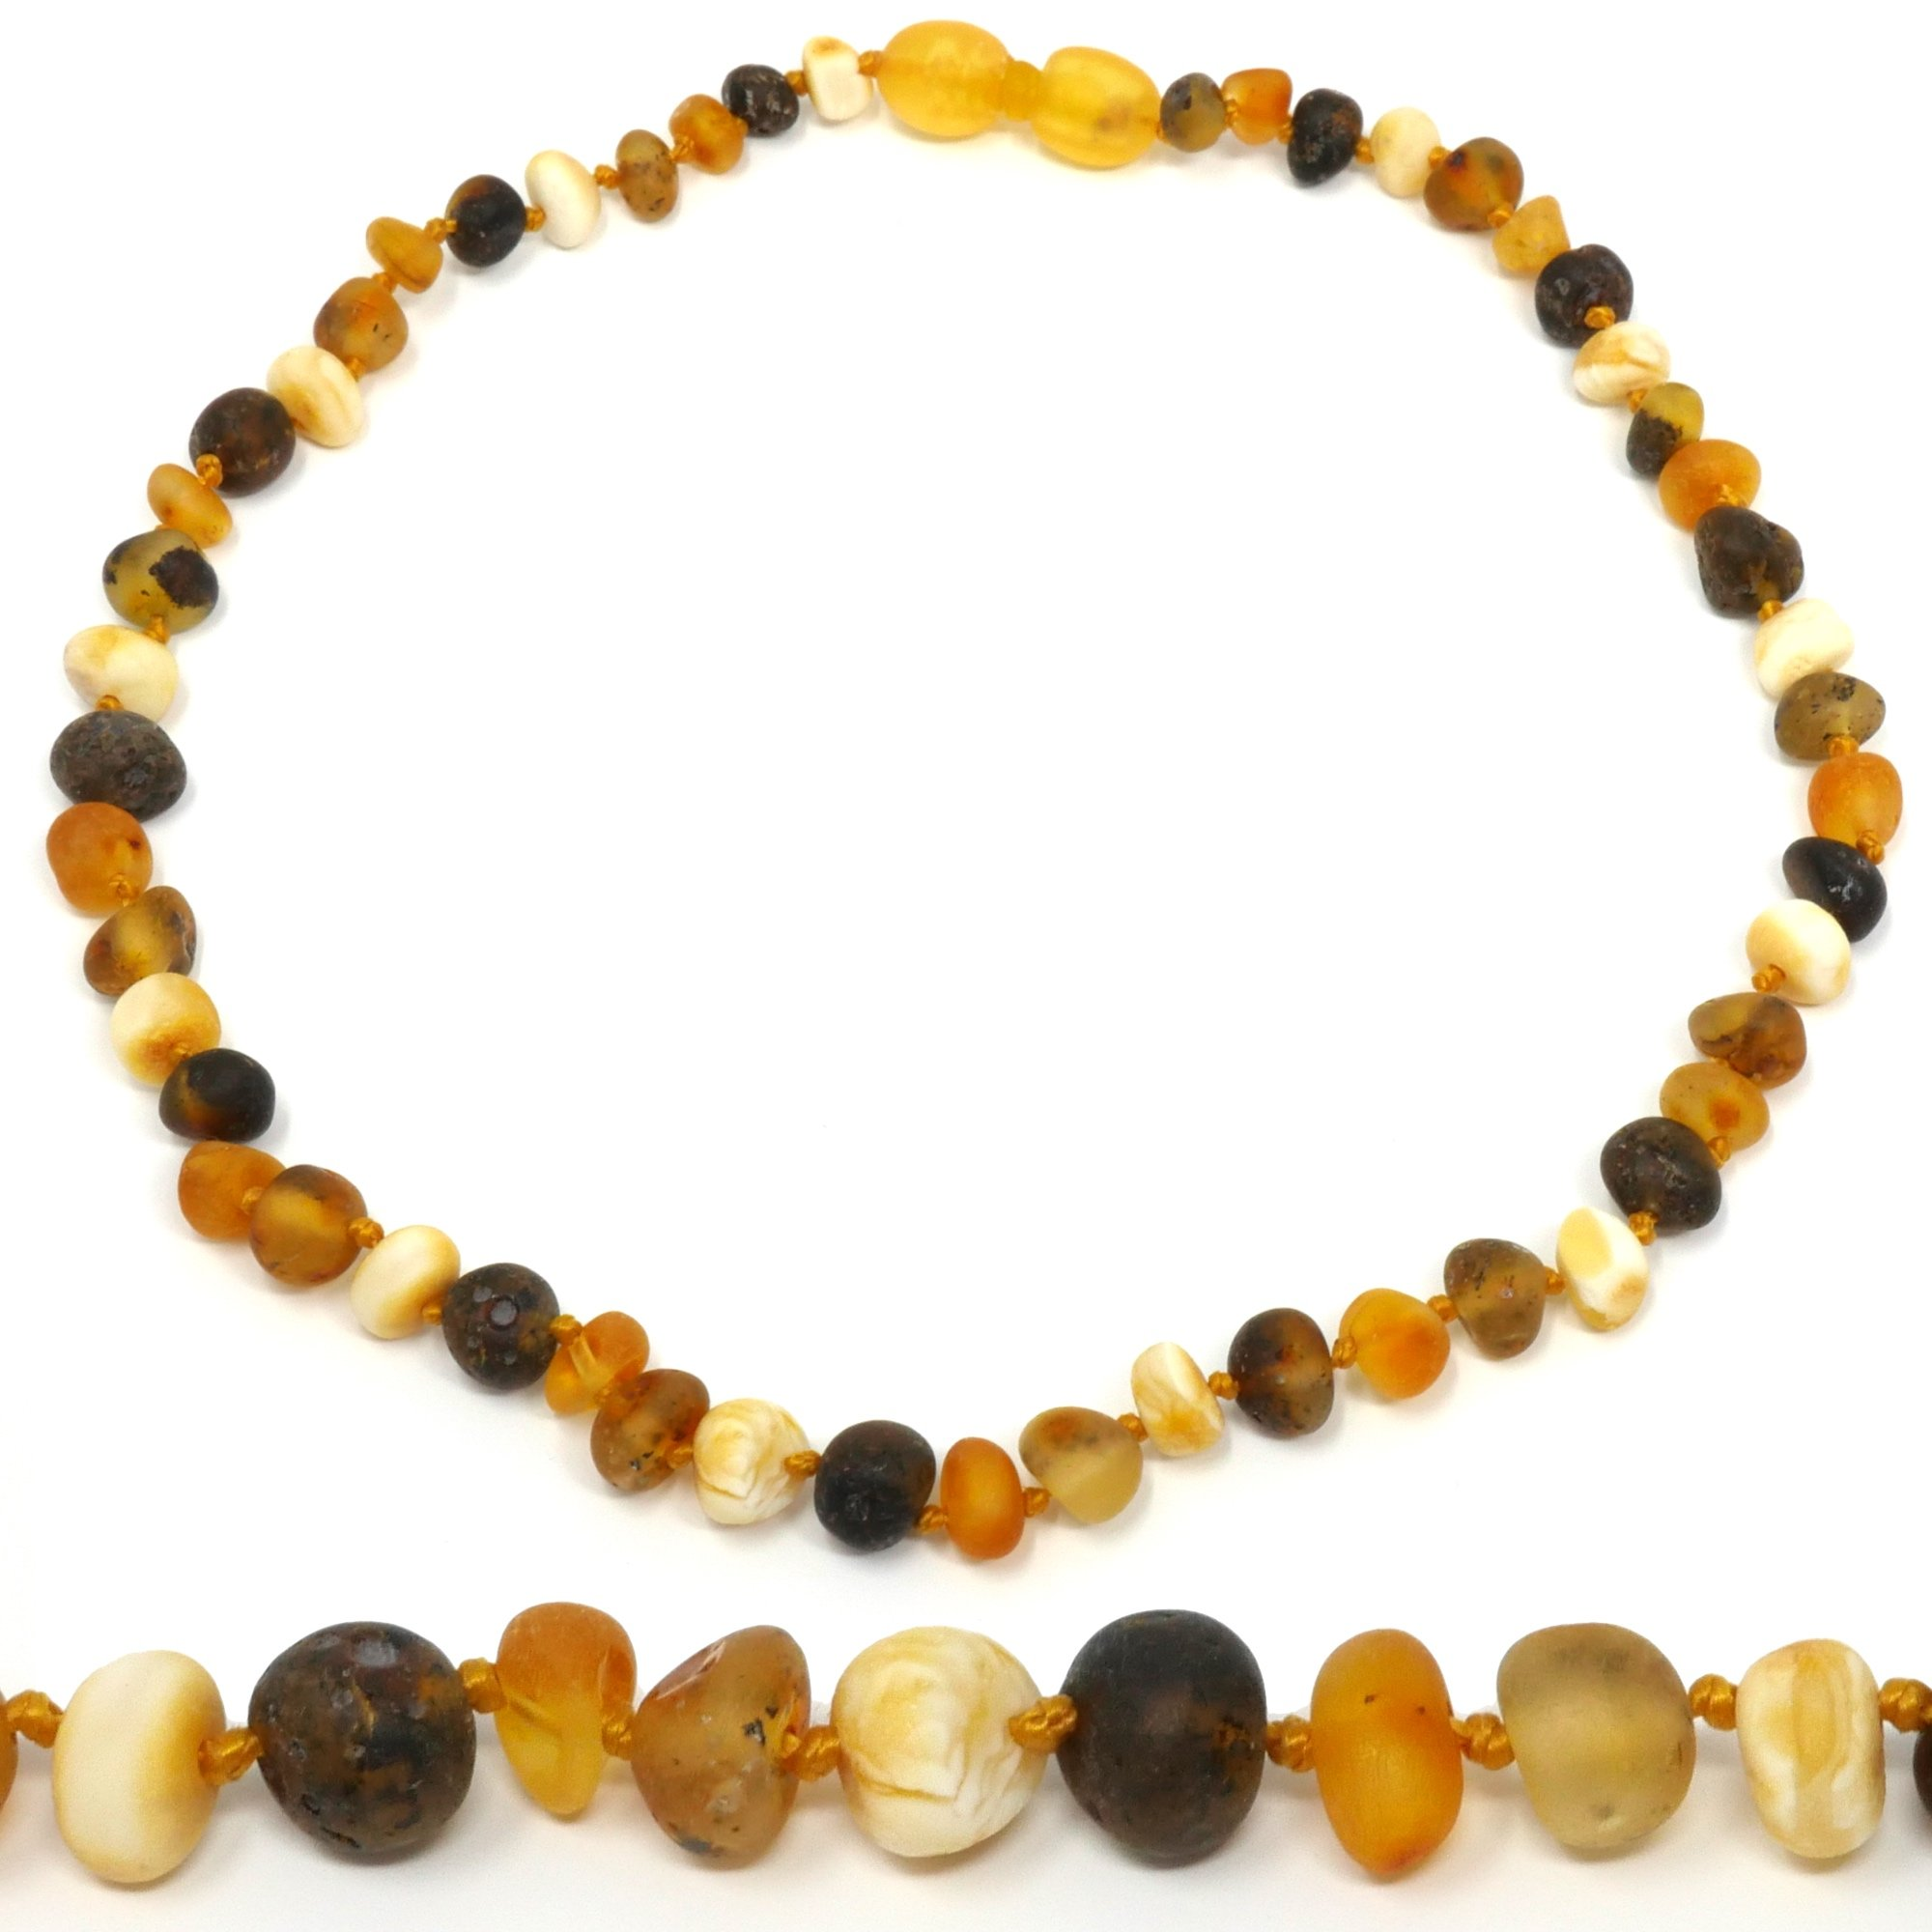 Amber Teething Necklace - TRULY Raw 100% Baltic Amber (11'', Multicolor)